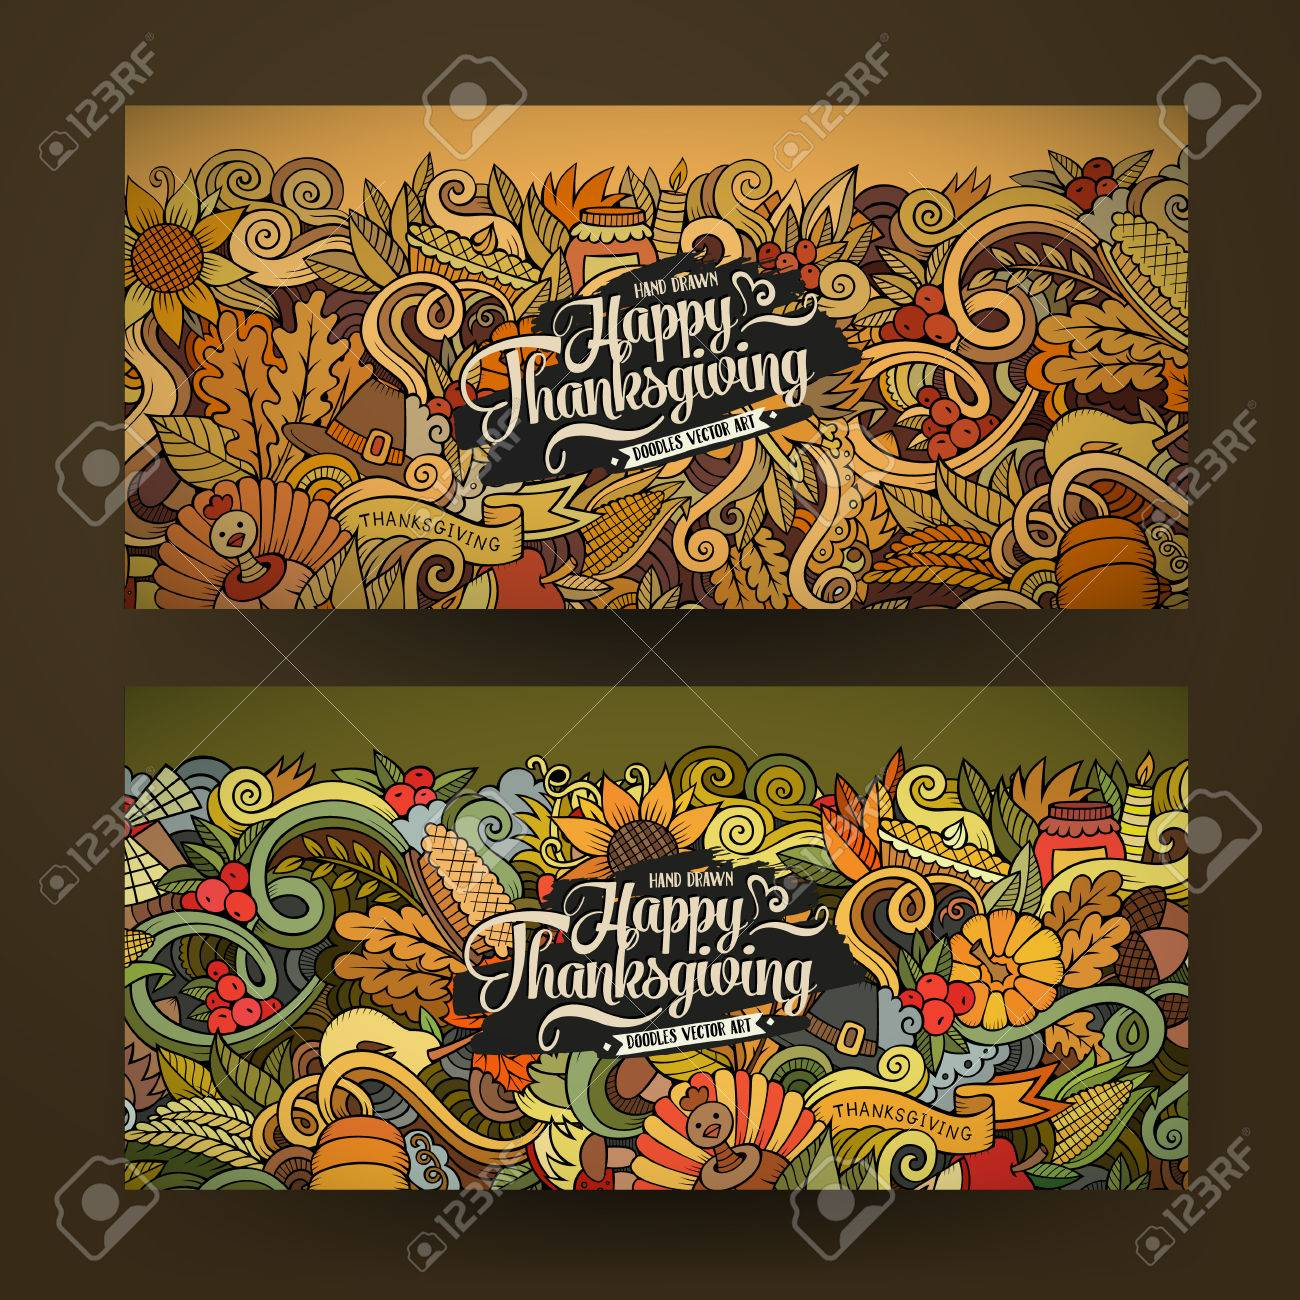 Cartoon vector hand-drawn Doodle Happy Thanksgiving Day cards. Horizontal banners design templates set - 48109725